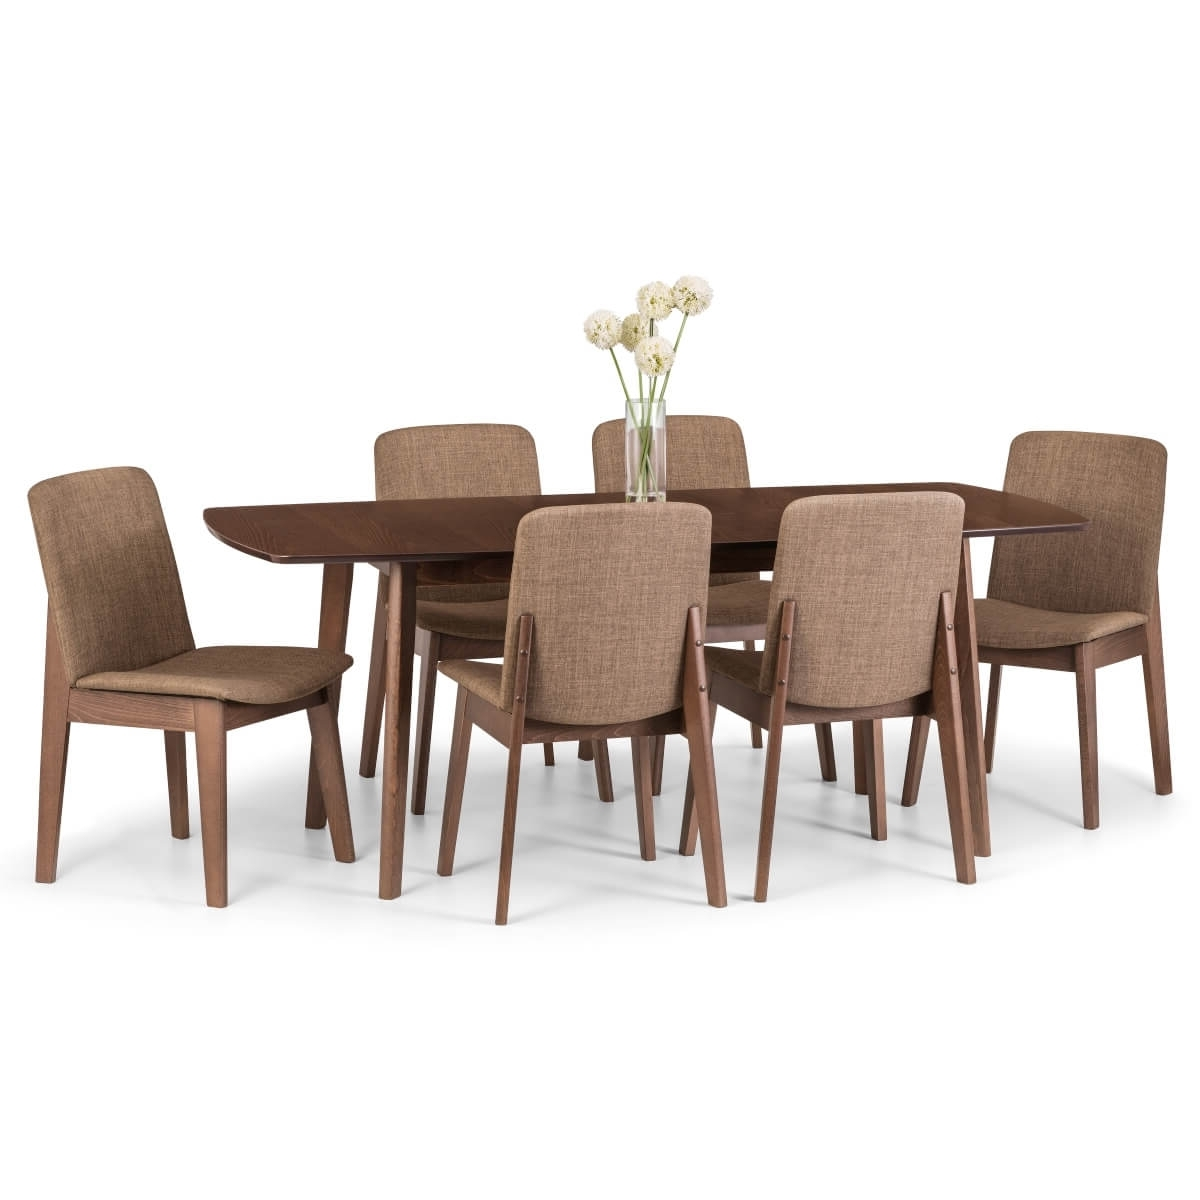 Dining Set – Kensington Dining Table, 6 Chairs In Walnut Ken205 With Regard To Well Liked Walnut Dining Table And 6 Chairs (View 8 of 25)